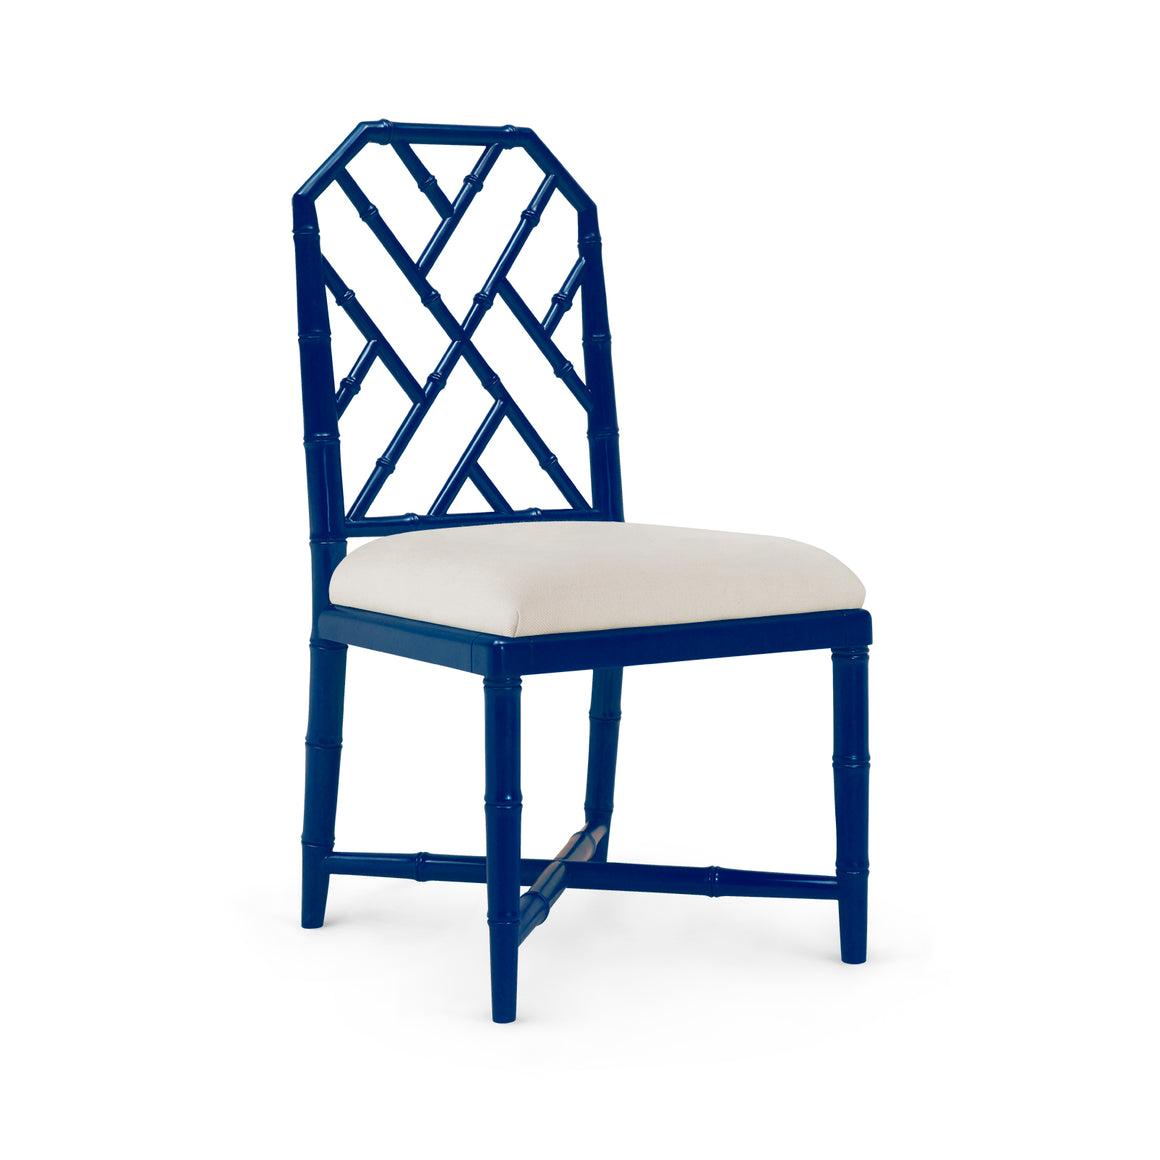 Bungalow 5 Jardin Side Chair, Navy Blue